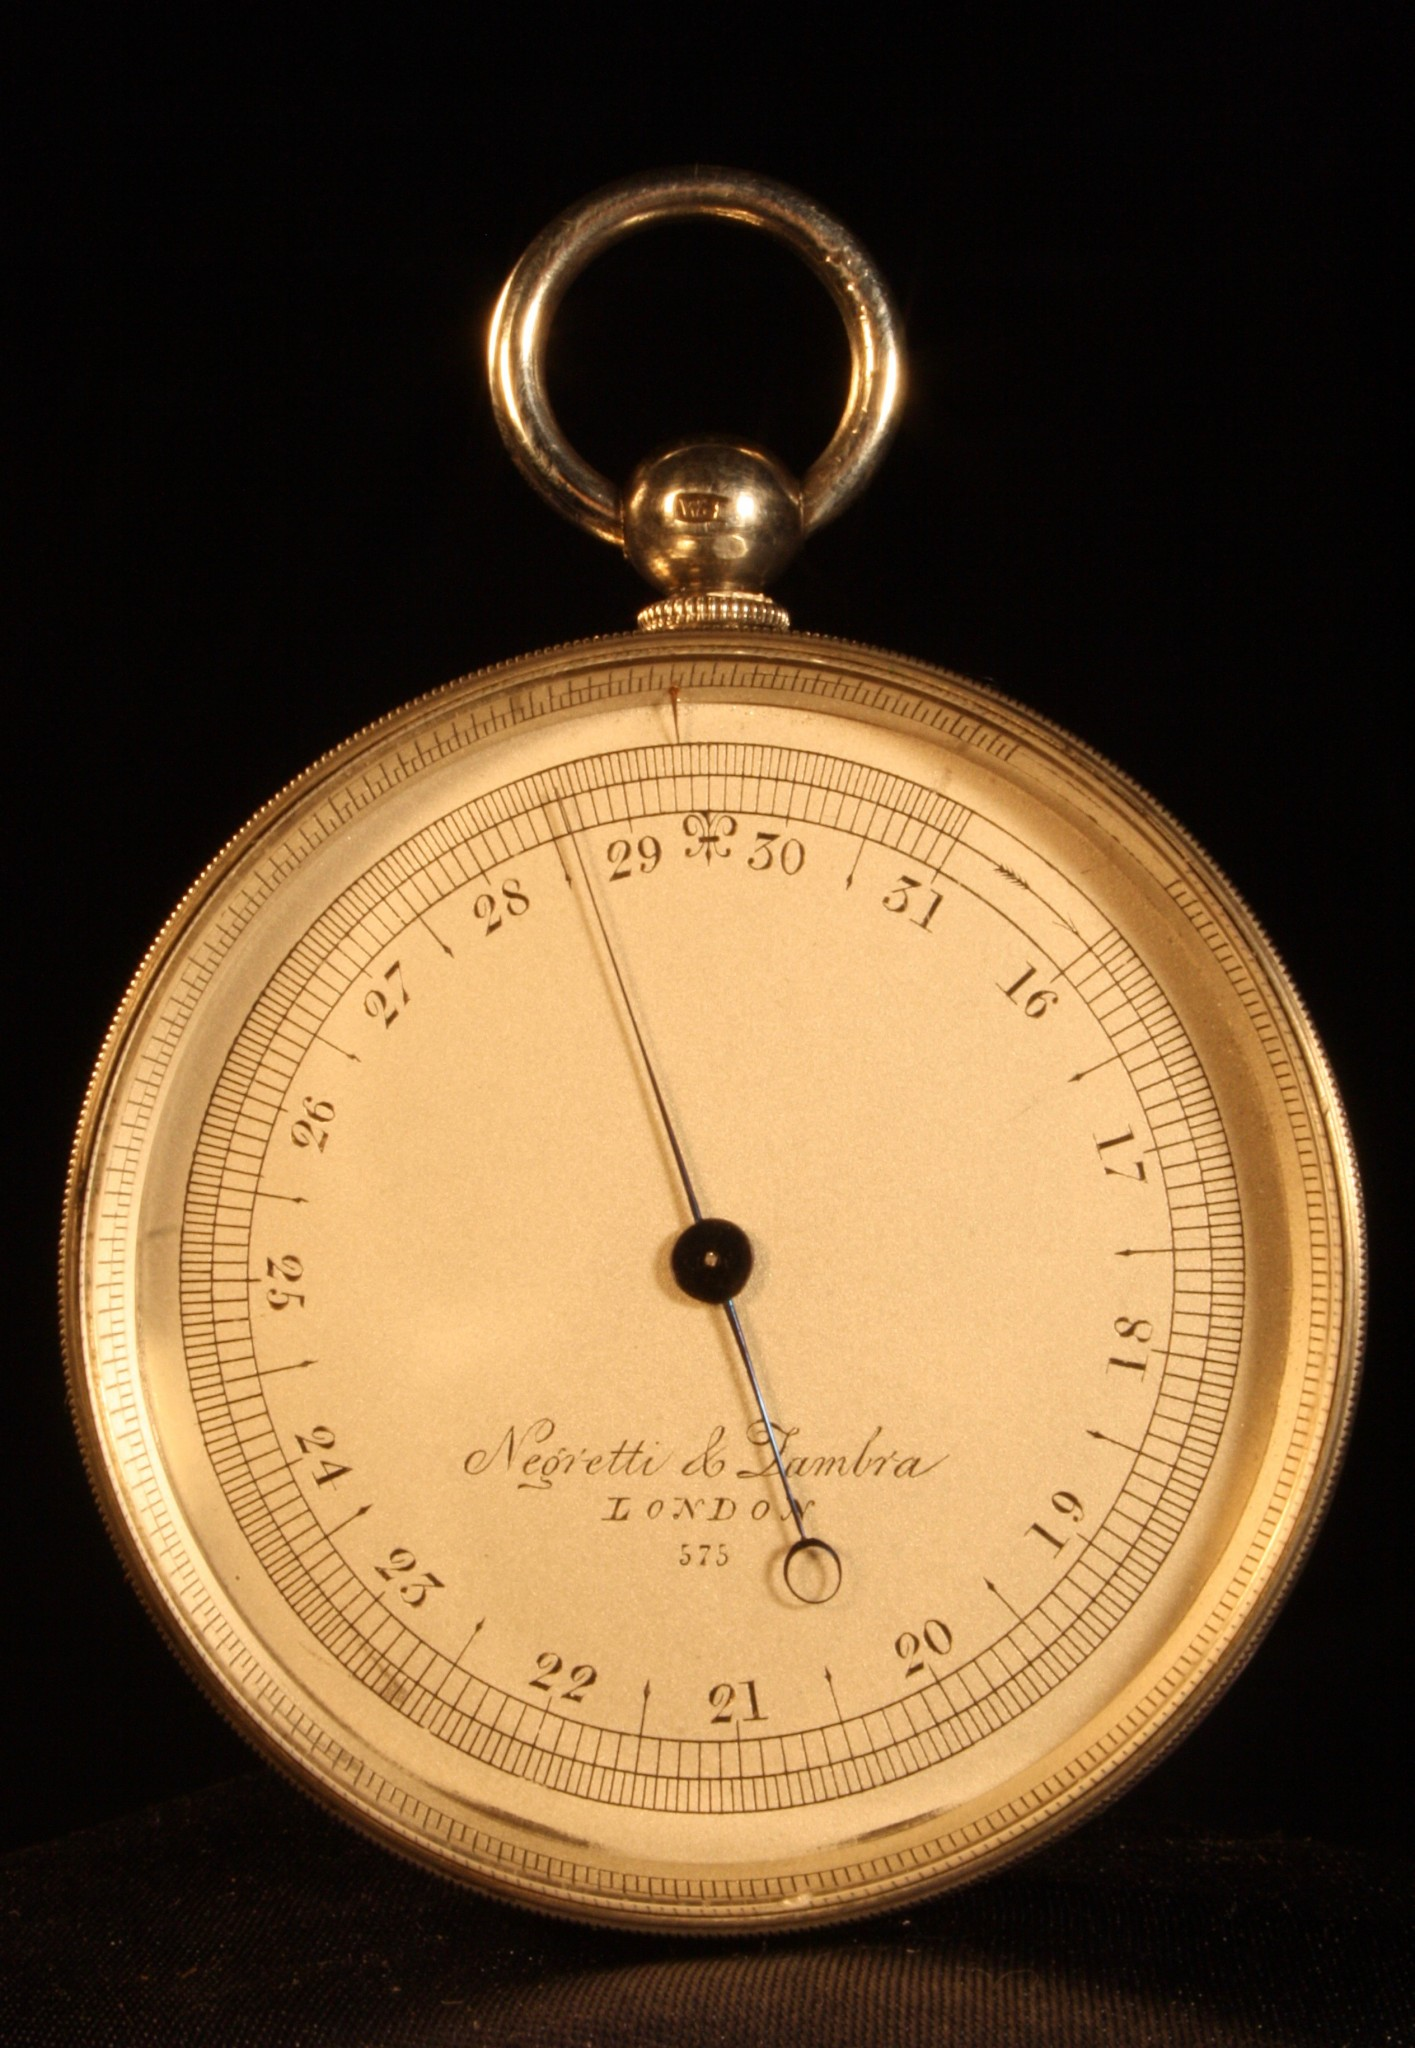 Image of Silver Pocket Barometer by Negretti & Zambra No 575